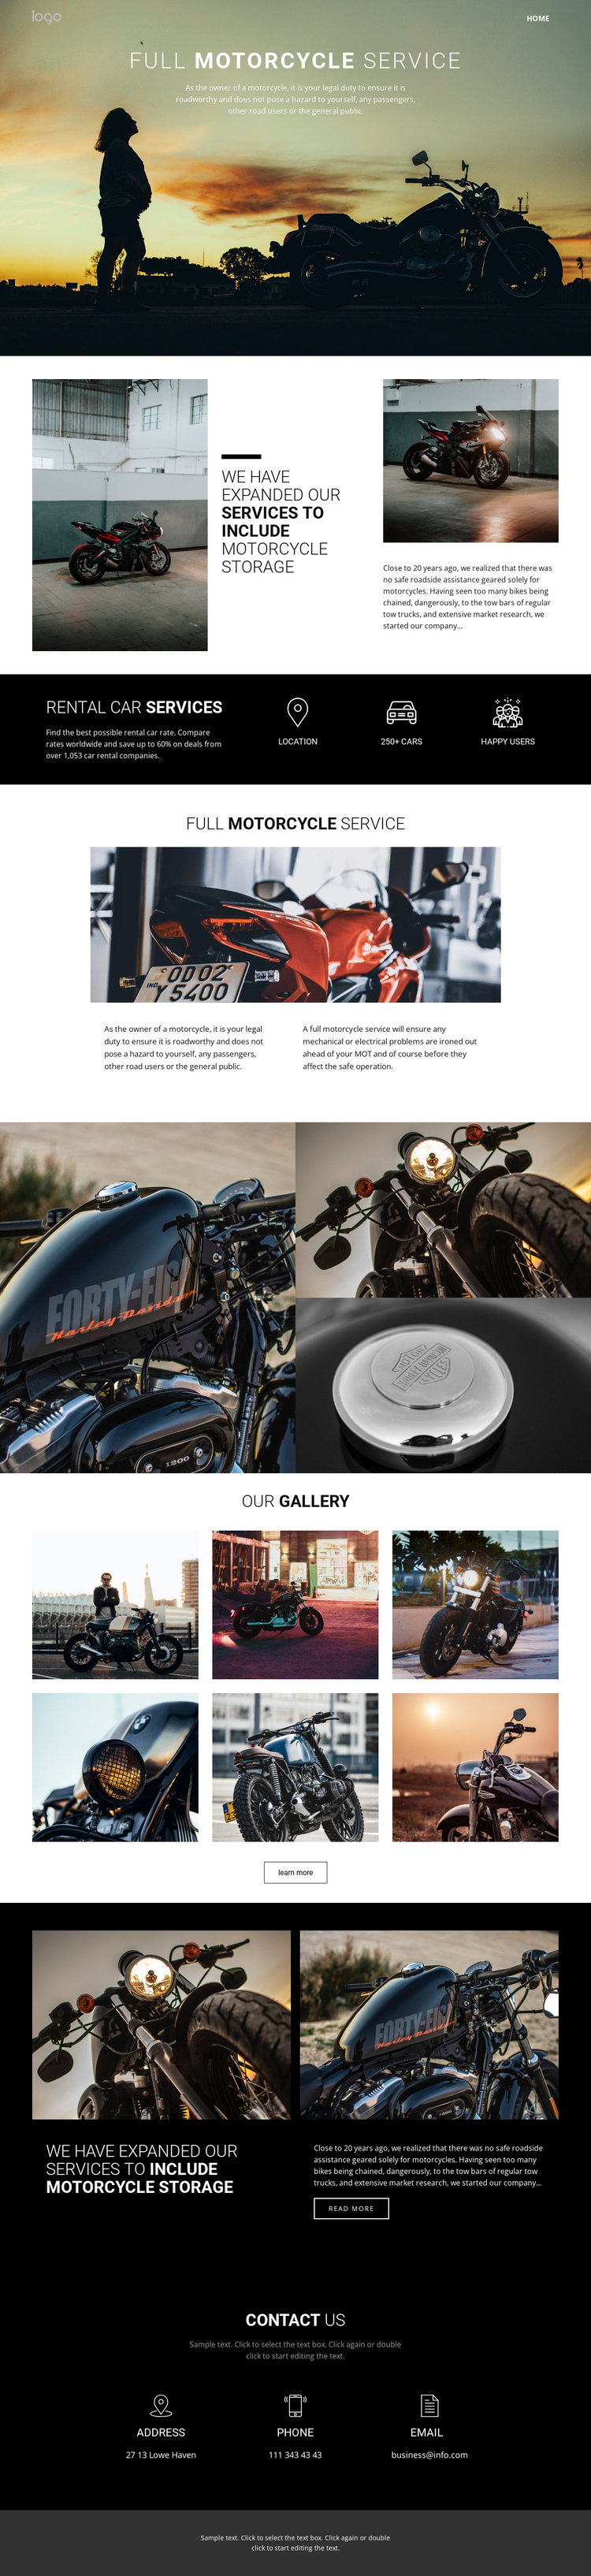 Caring for cycles and cars Website Builder Software